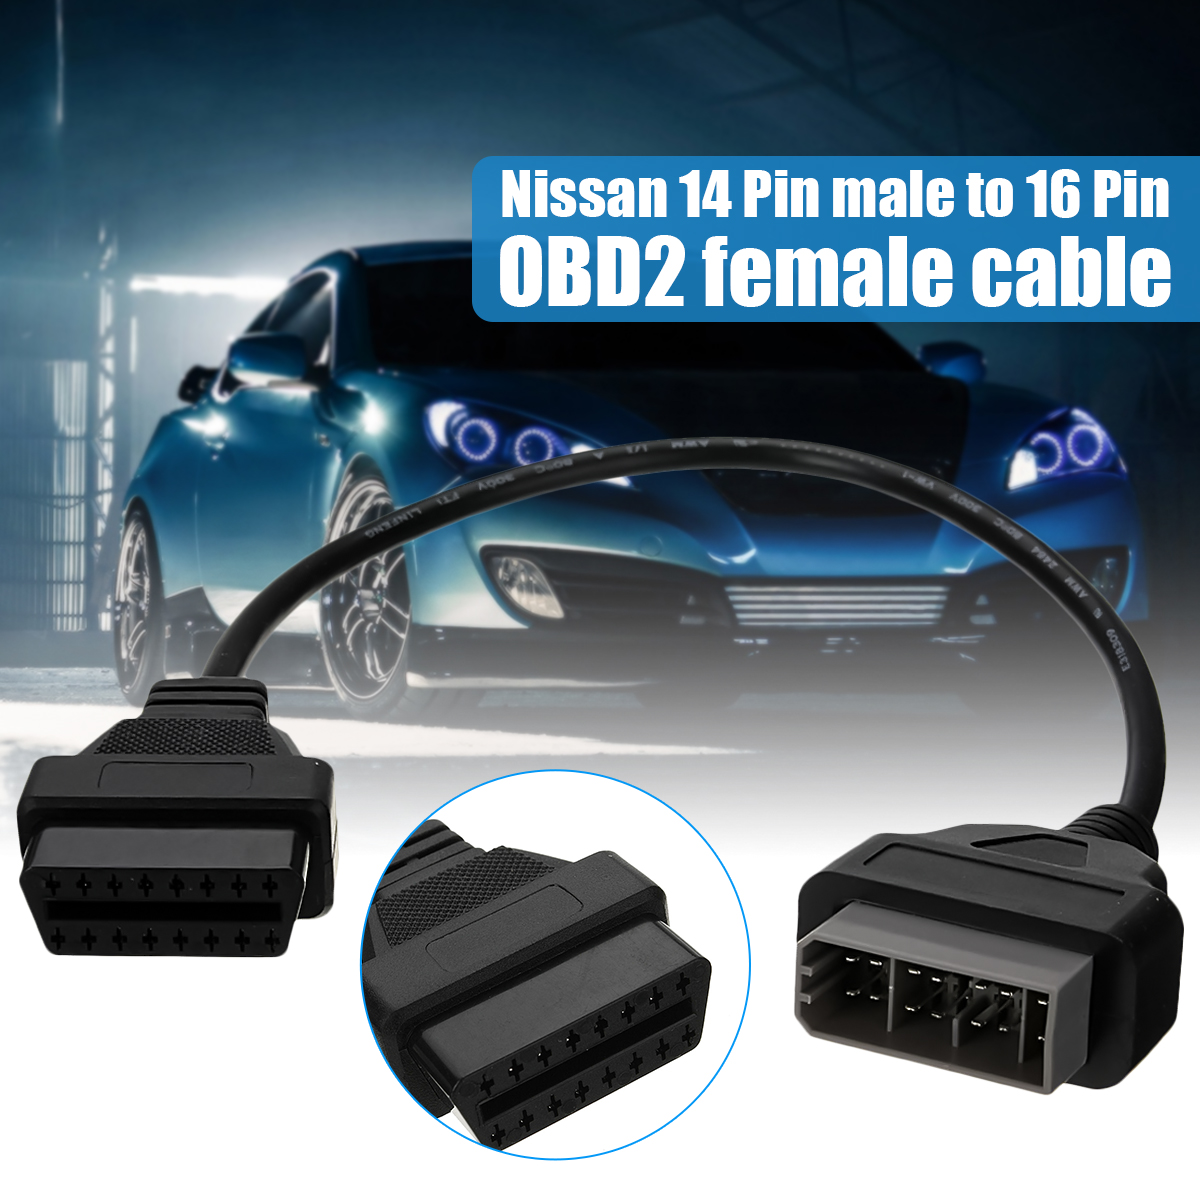 14 Pin Male to 16 Pin OBD2 Female Cable Connectors for Nissan